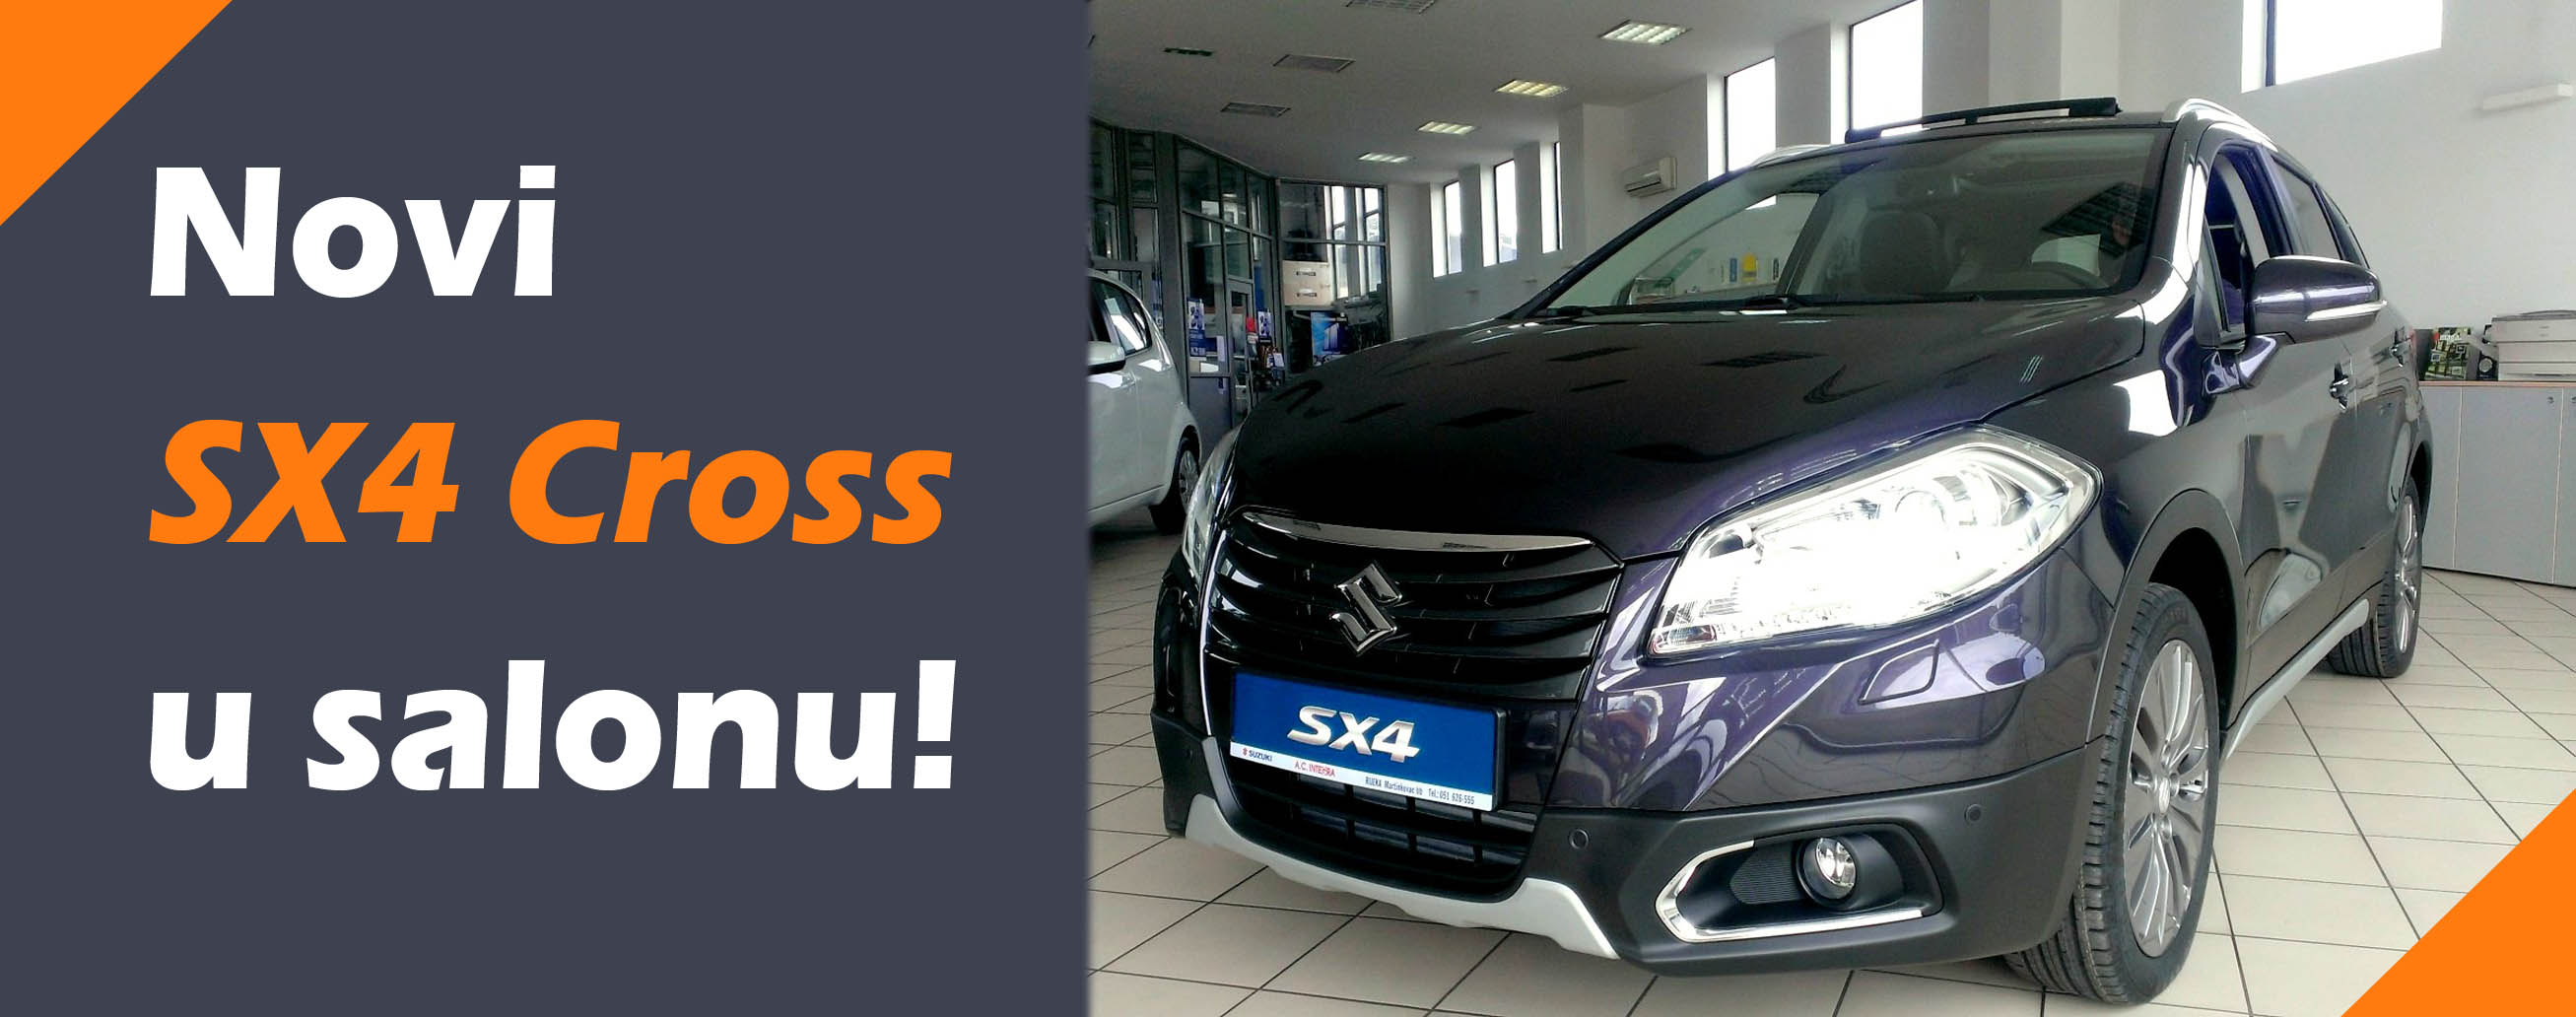 SX4 S-Cross_u_salonu